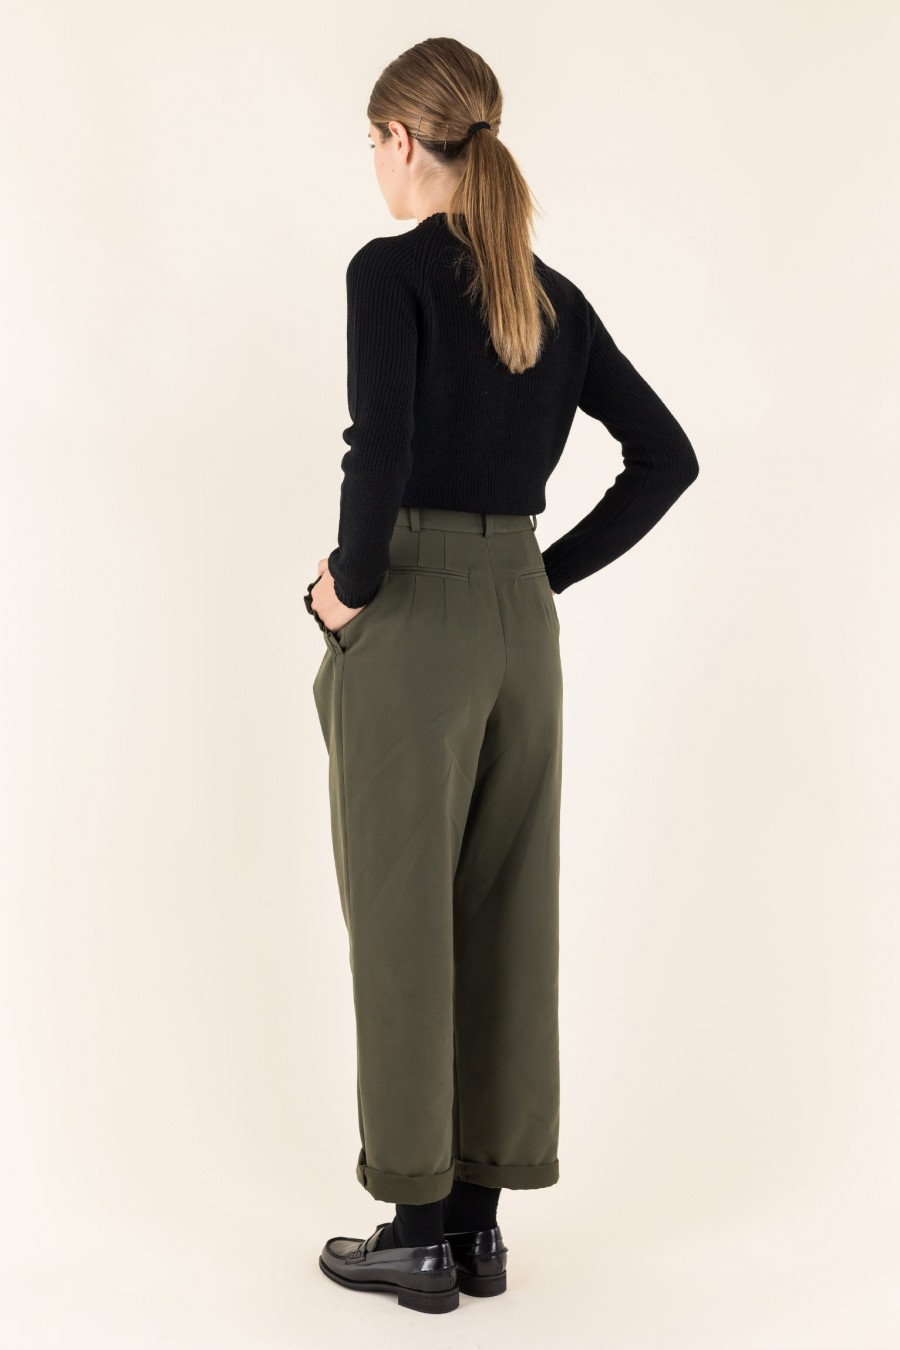 Cotton military green pants